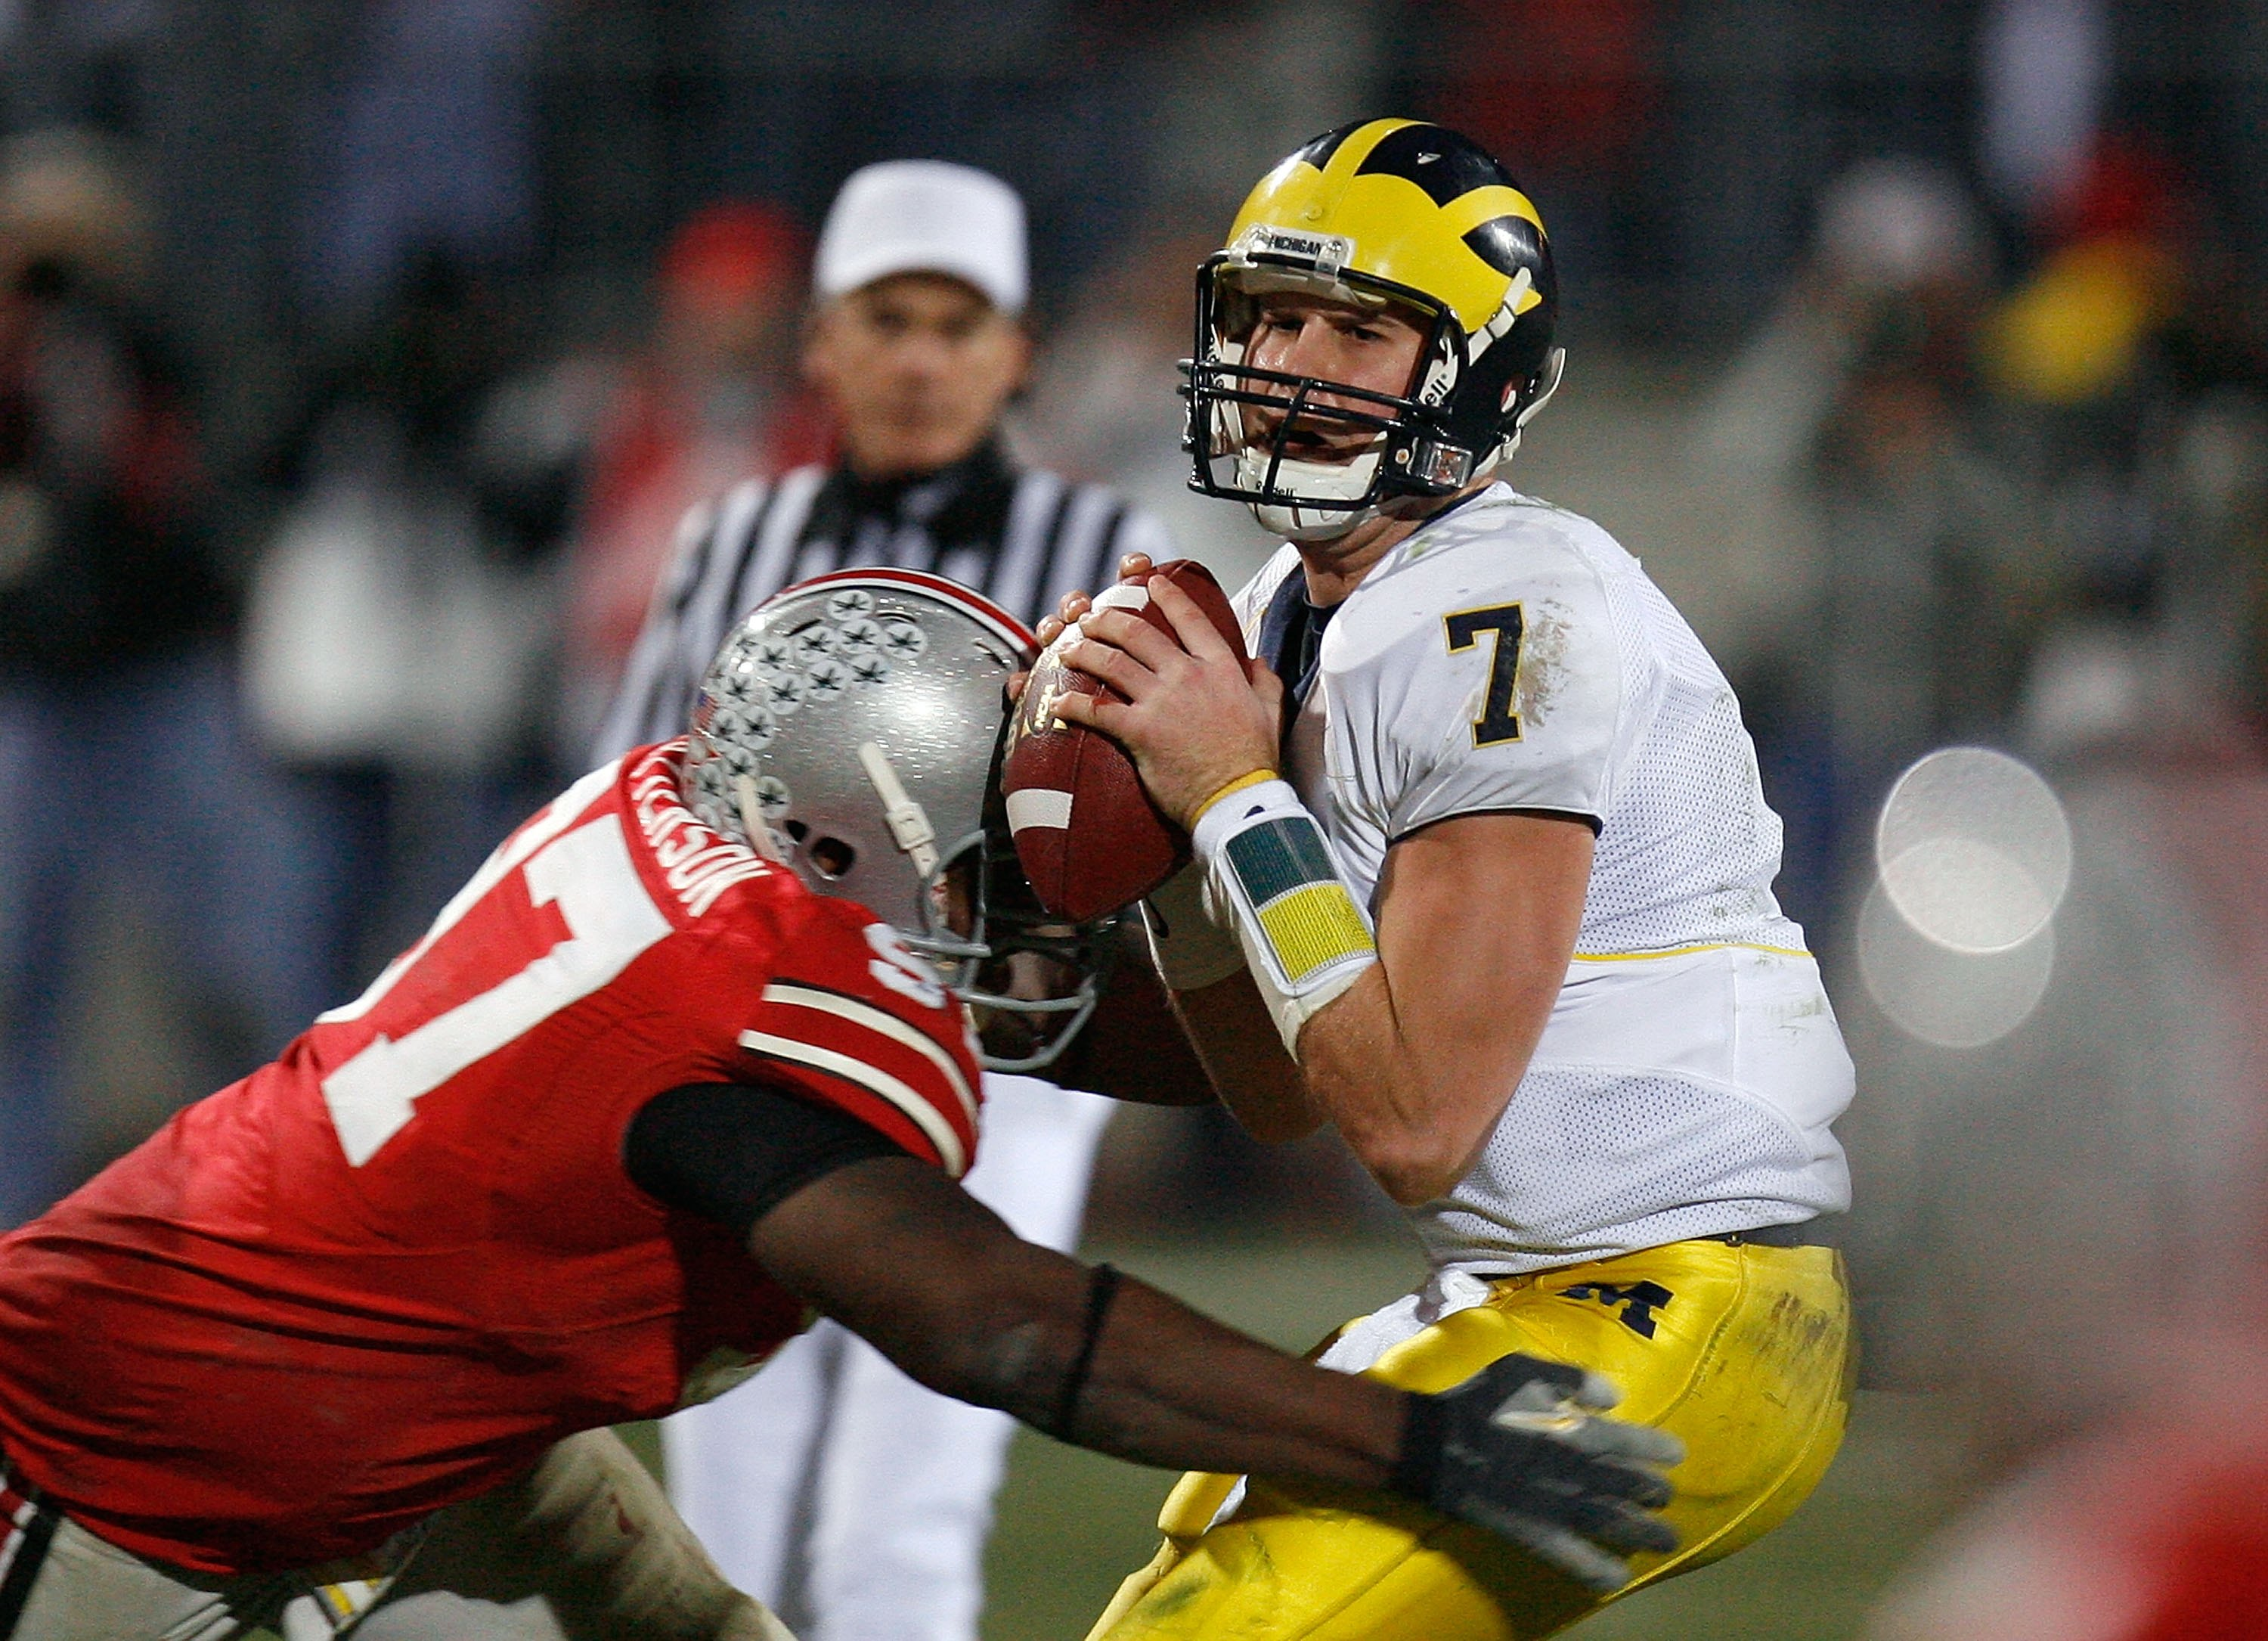 COLUMBUS, OH - NOVEMBER 18:  David Patterson #97 of the Ohio State Buckeyes hits quarterback Chad Henne #7 of the Michigan Wolverines November 18, 2006 at Ohio Stadium in Columbus, Ohio. Ohio State won 42-39.  (Photo by Gregory Shamus/Getty Images)